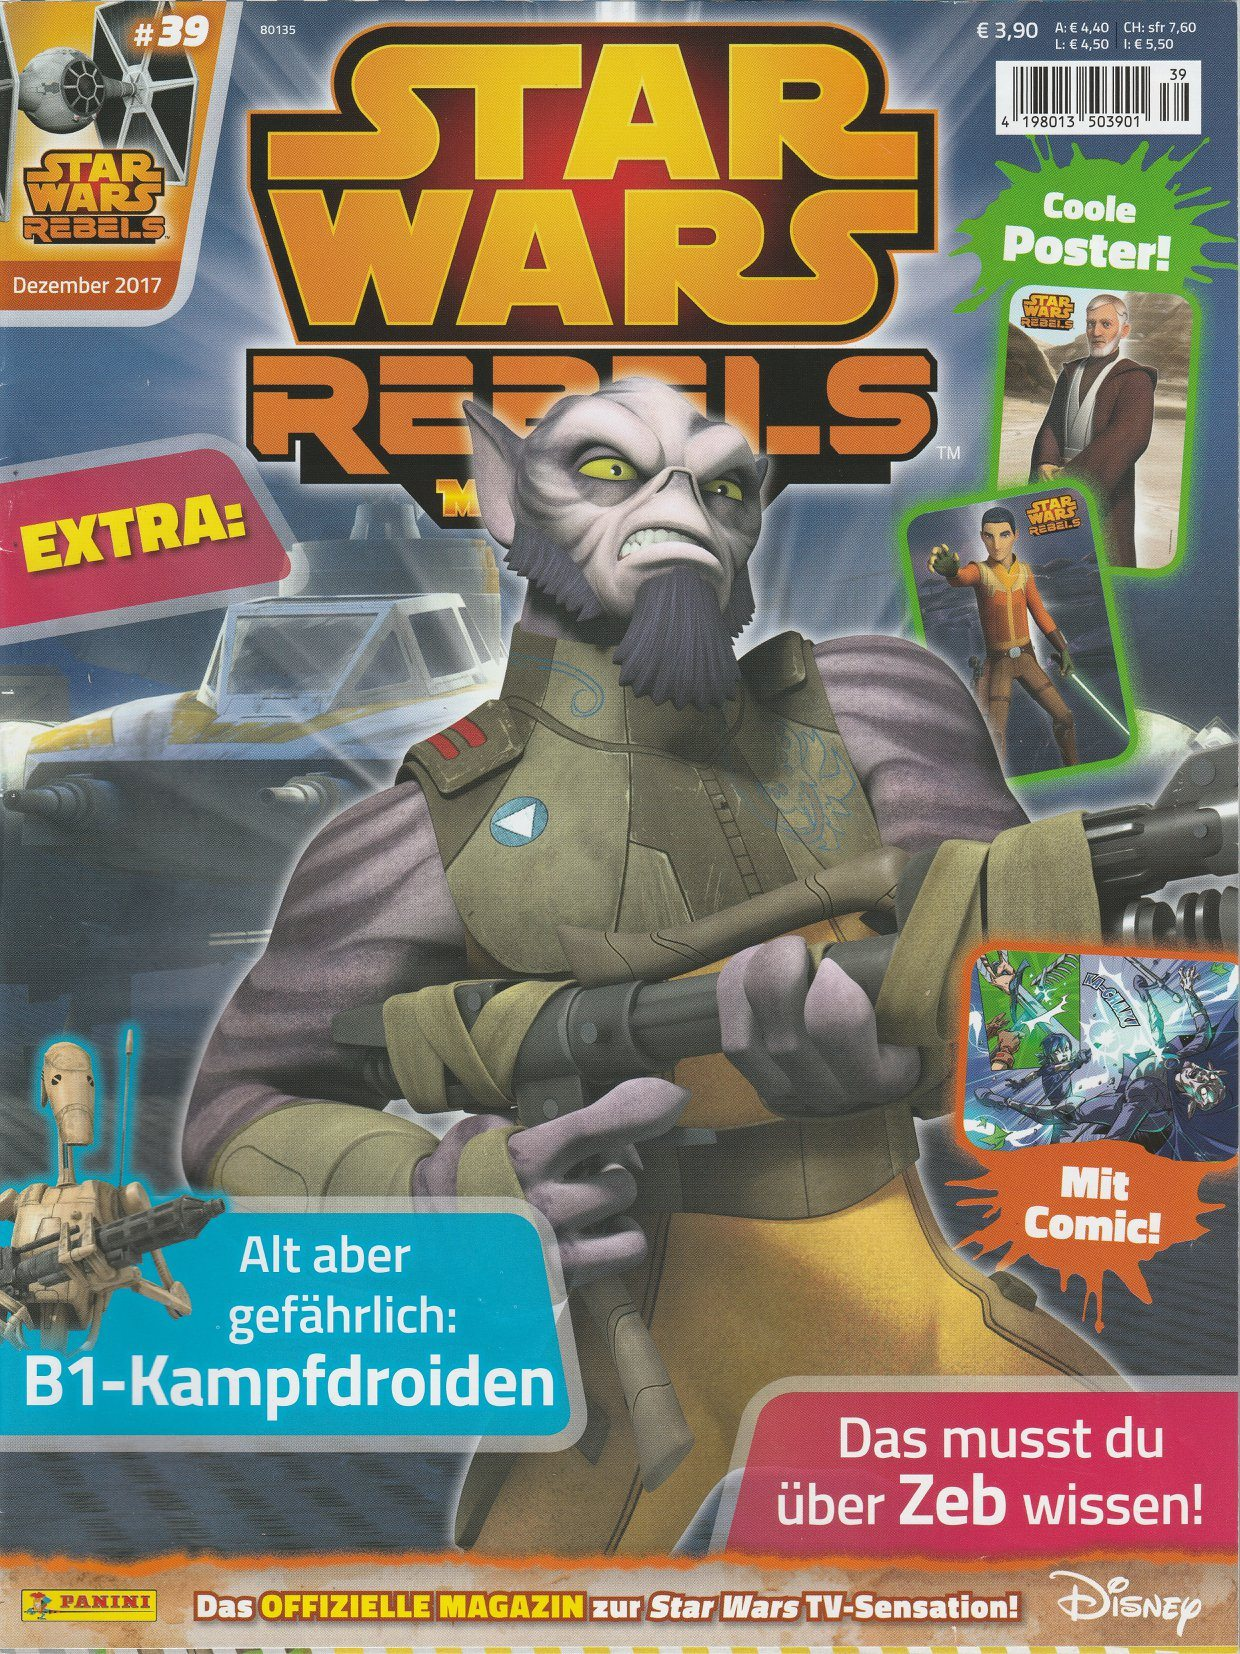 Star Wars Rebels: Never Far Behind